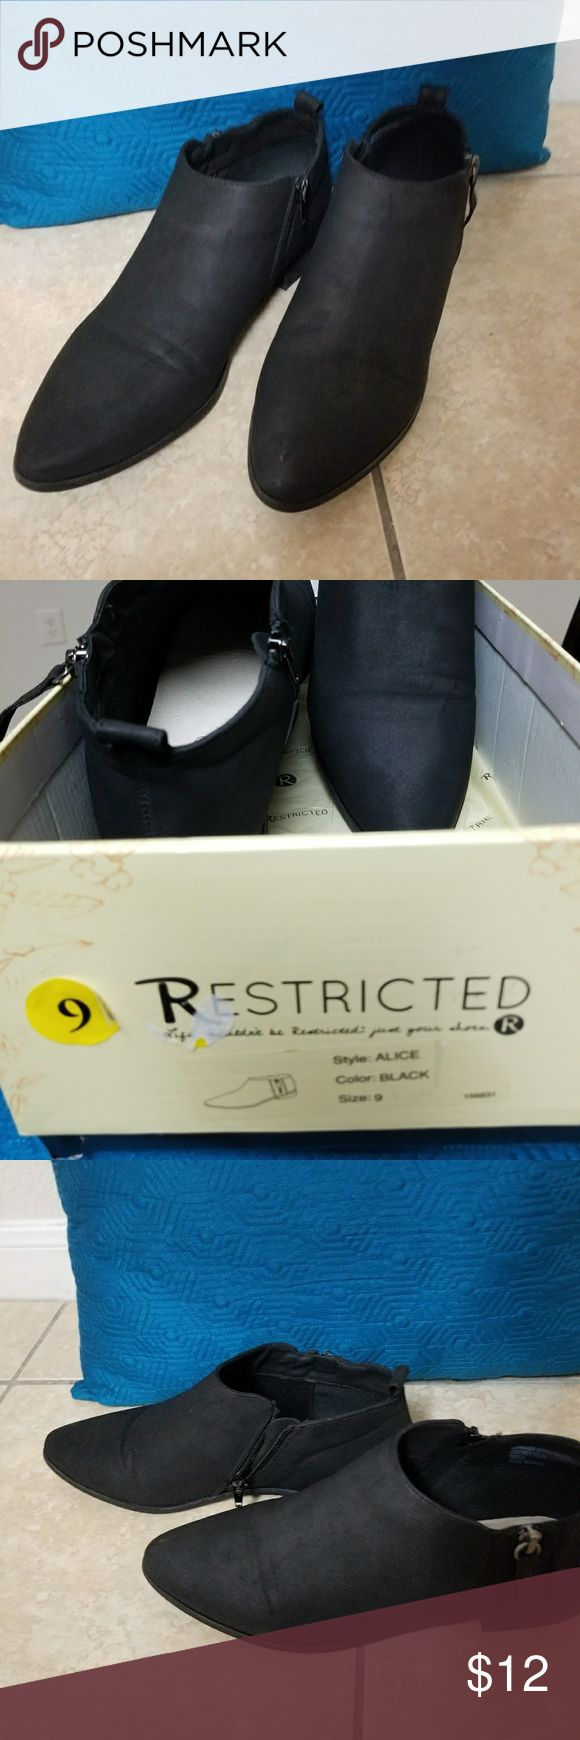 Restricted ankle booties size 9 Restricrted Black suede material   low top booties 2 zippers outter & inner sides (worn only 3 times ) low 1 inch heel. Restricted Shoes Ankle Boots & Booties